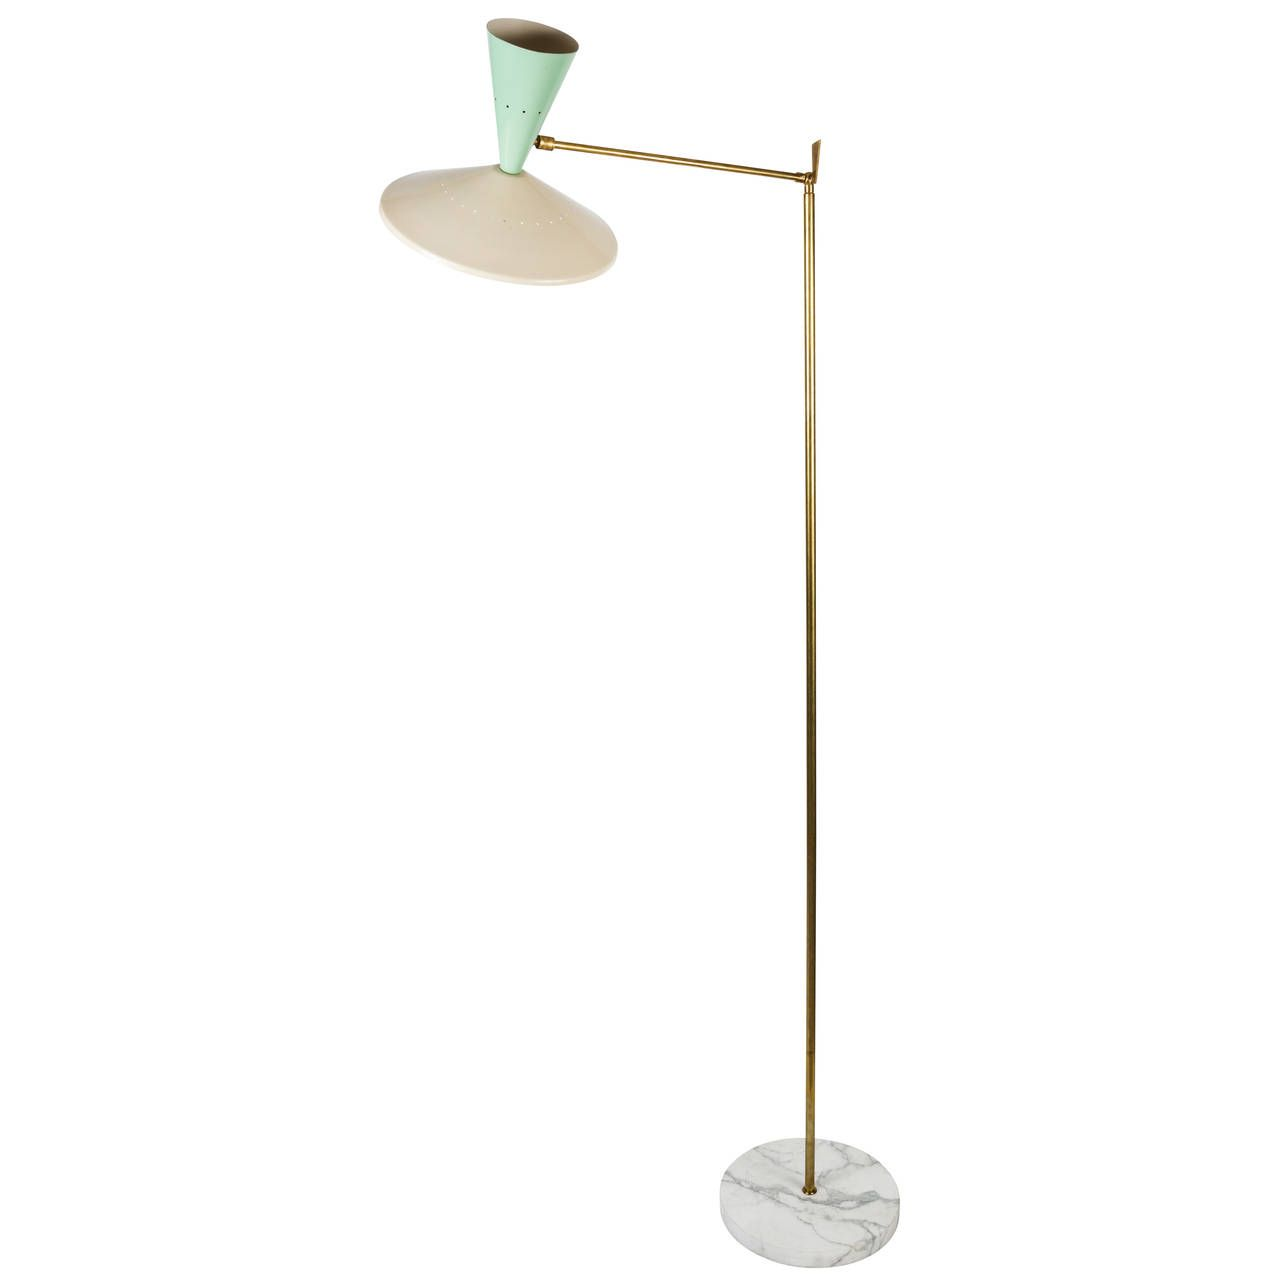 Pin By David On Lamps Floor Lamp Modern Floor Lamps Contemporary Lamps